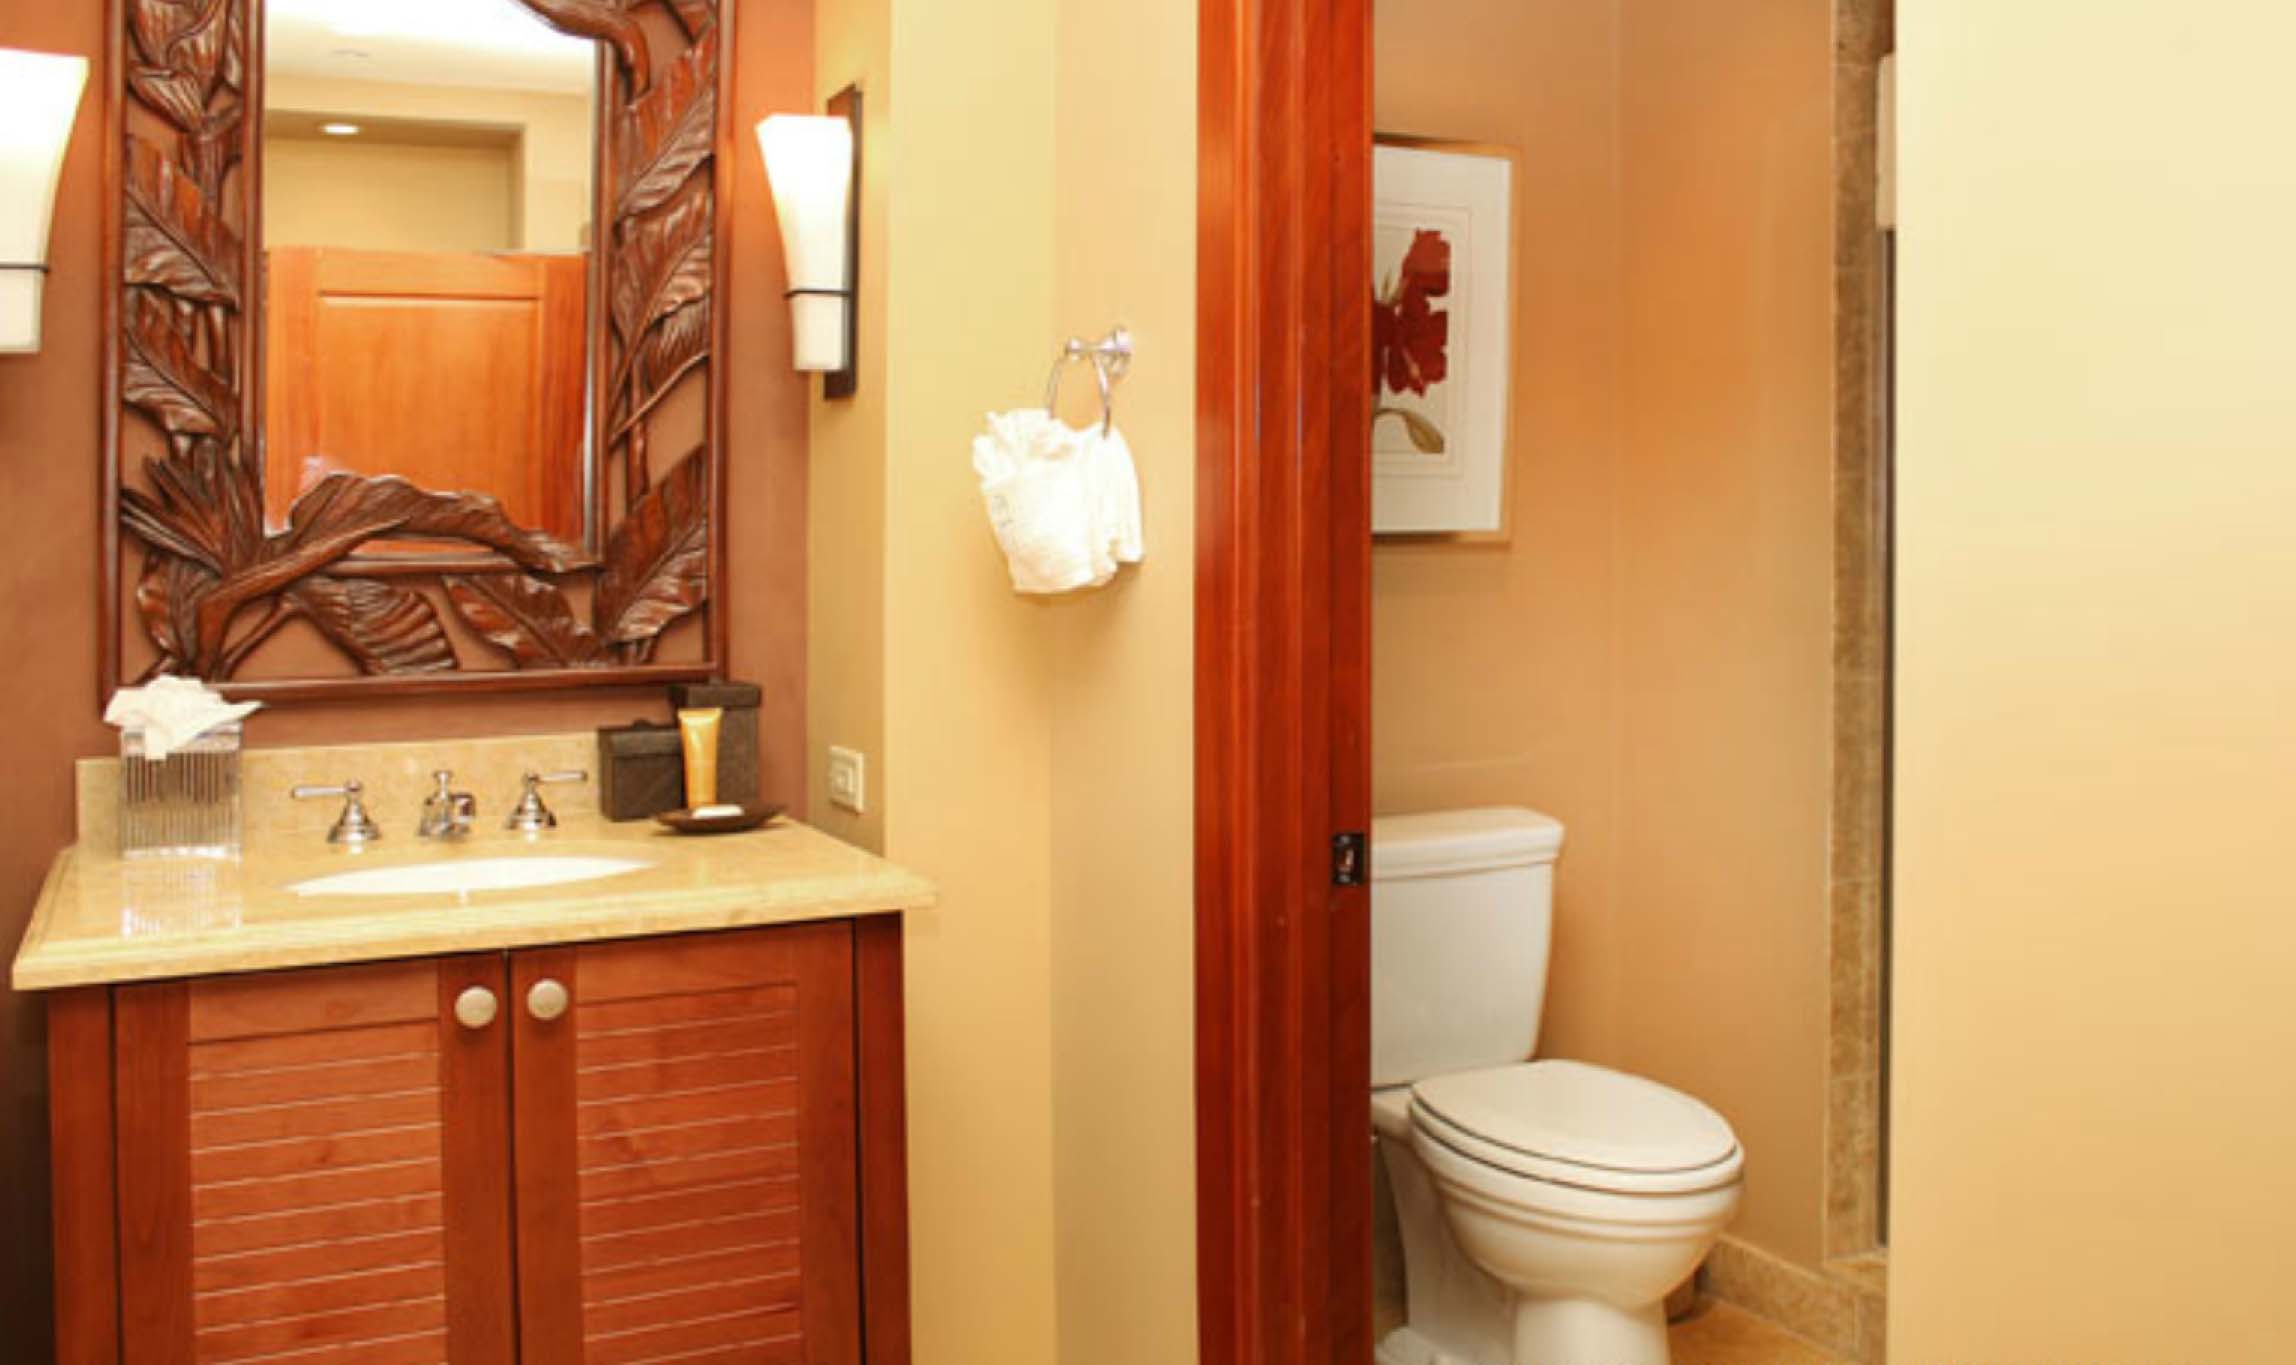 Third bedroom bathroom